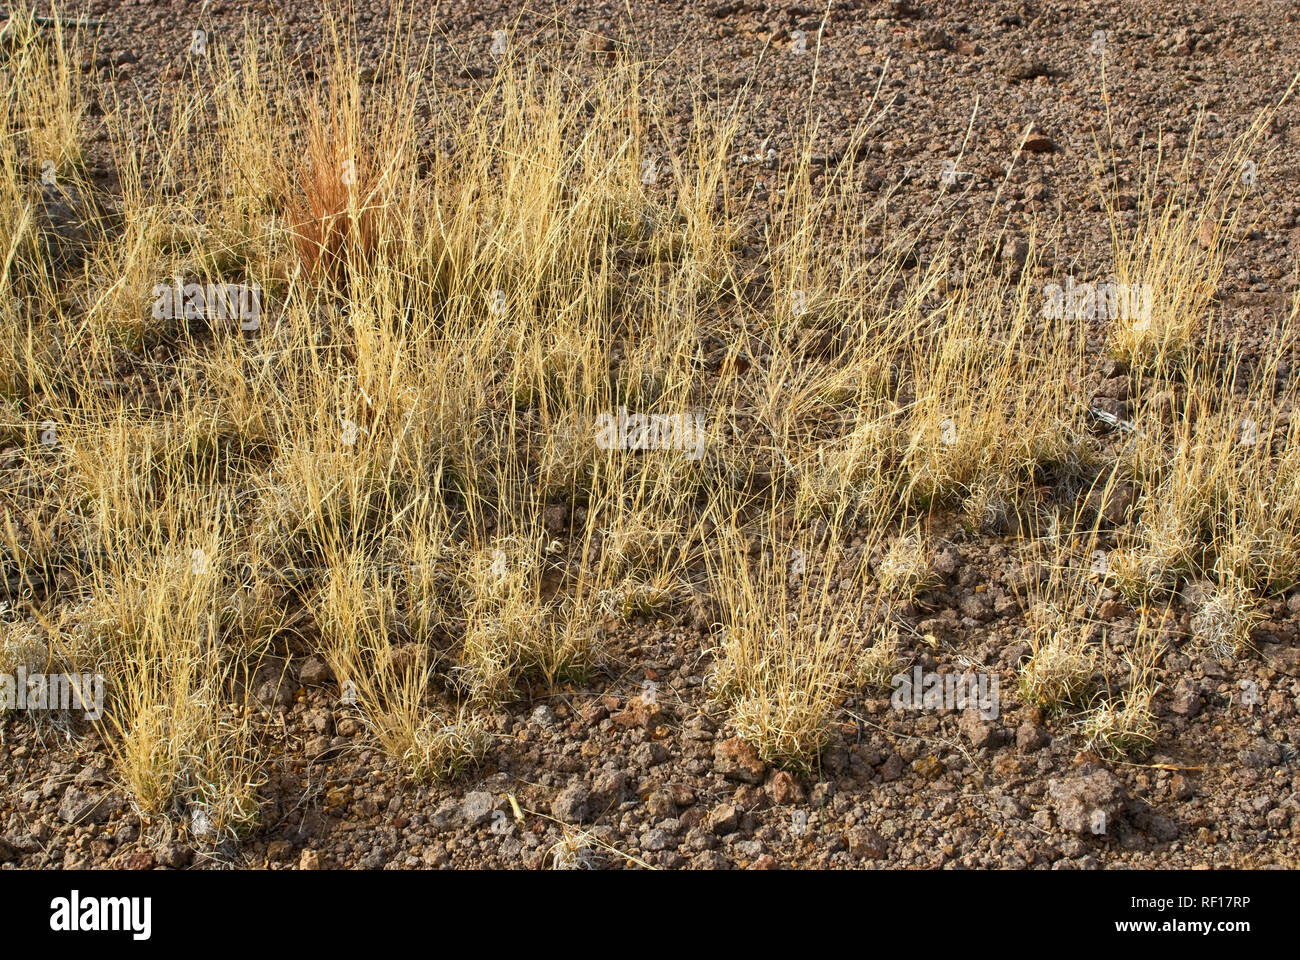 Grass growing back after decades of overgrazing damage, Chihuahuan Desert, Cinco Tinajas Trail at Big Bend Ranch State Park, Texas, USA - Stock Image